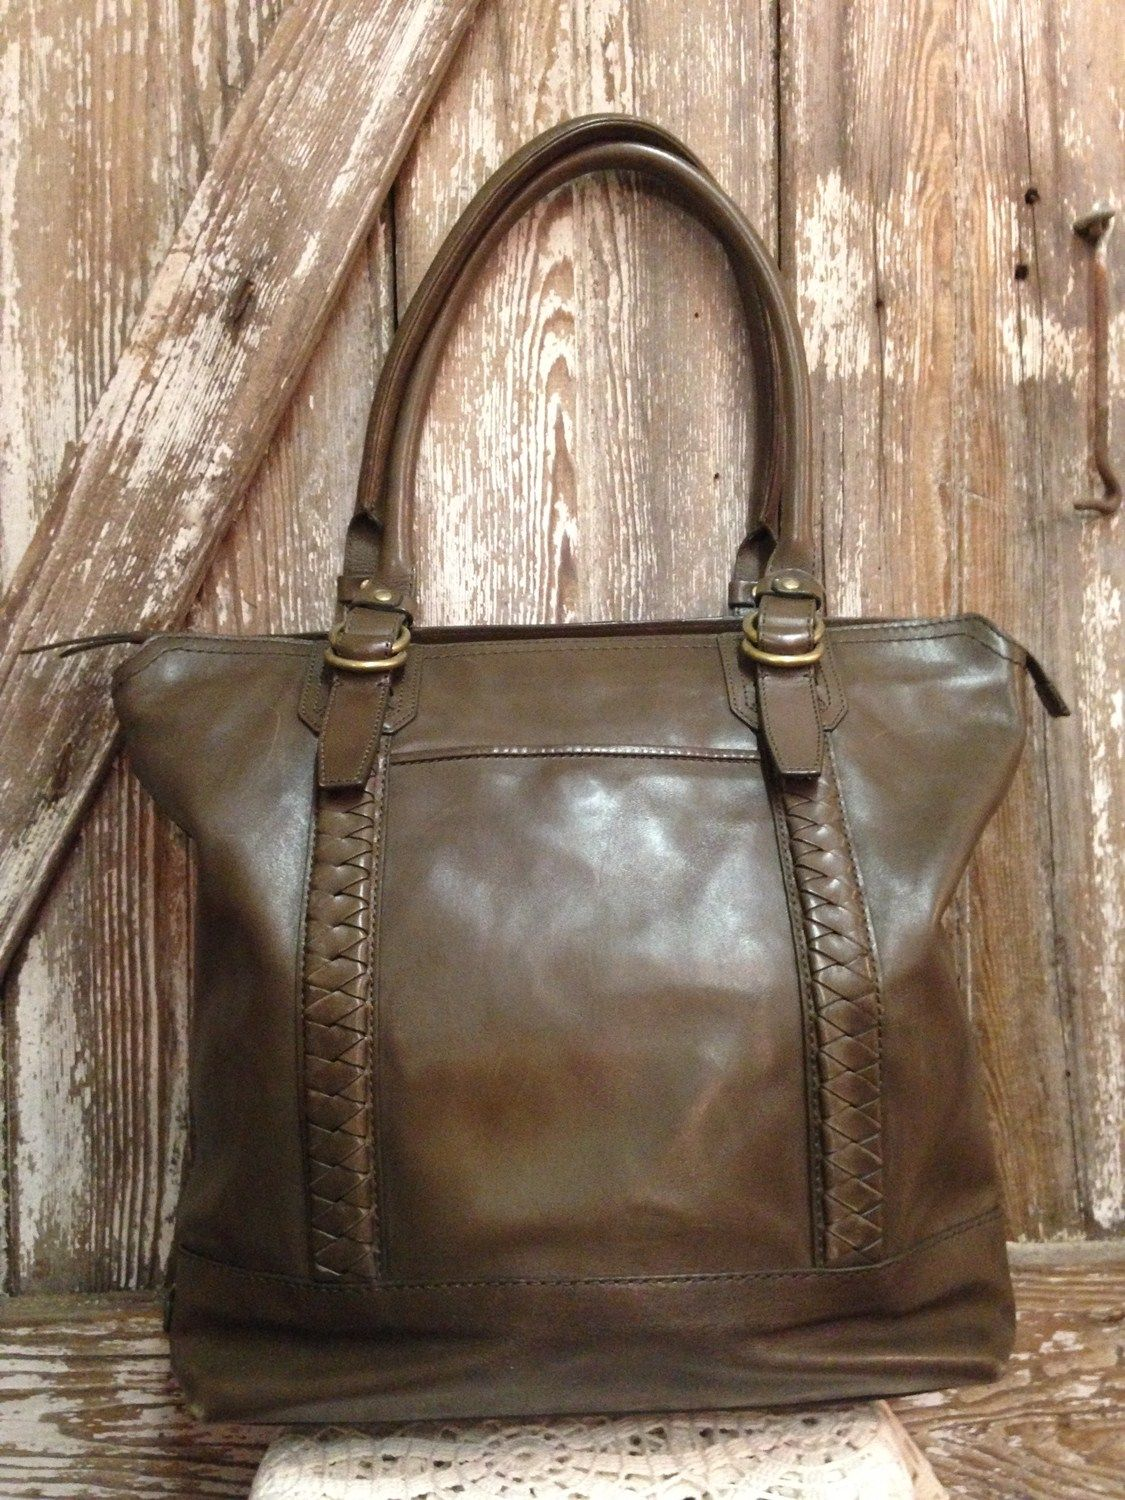 Cole Haan Olive Leather Tote Purse - $174